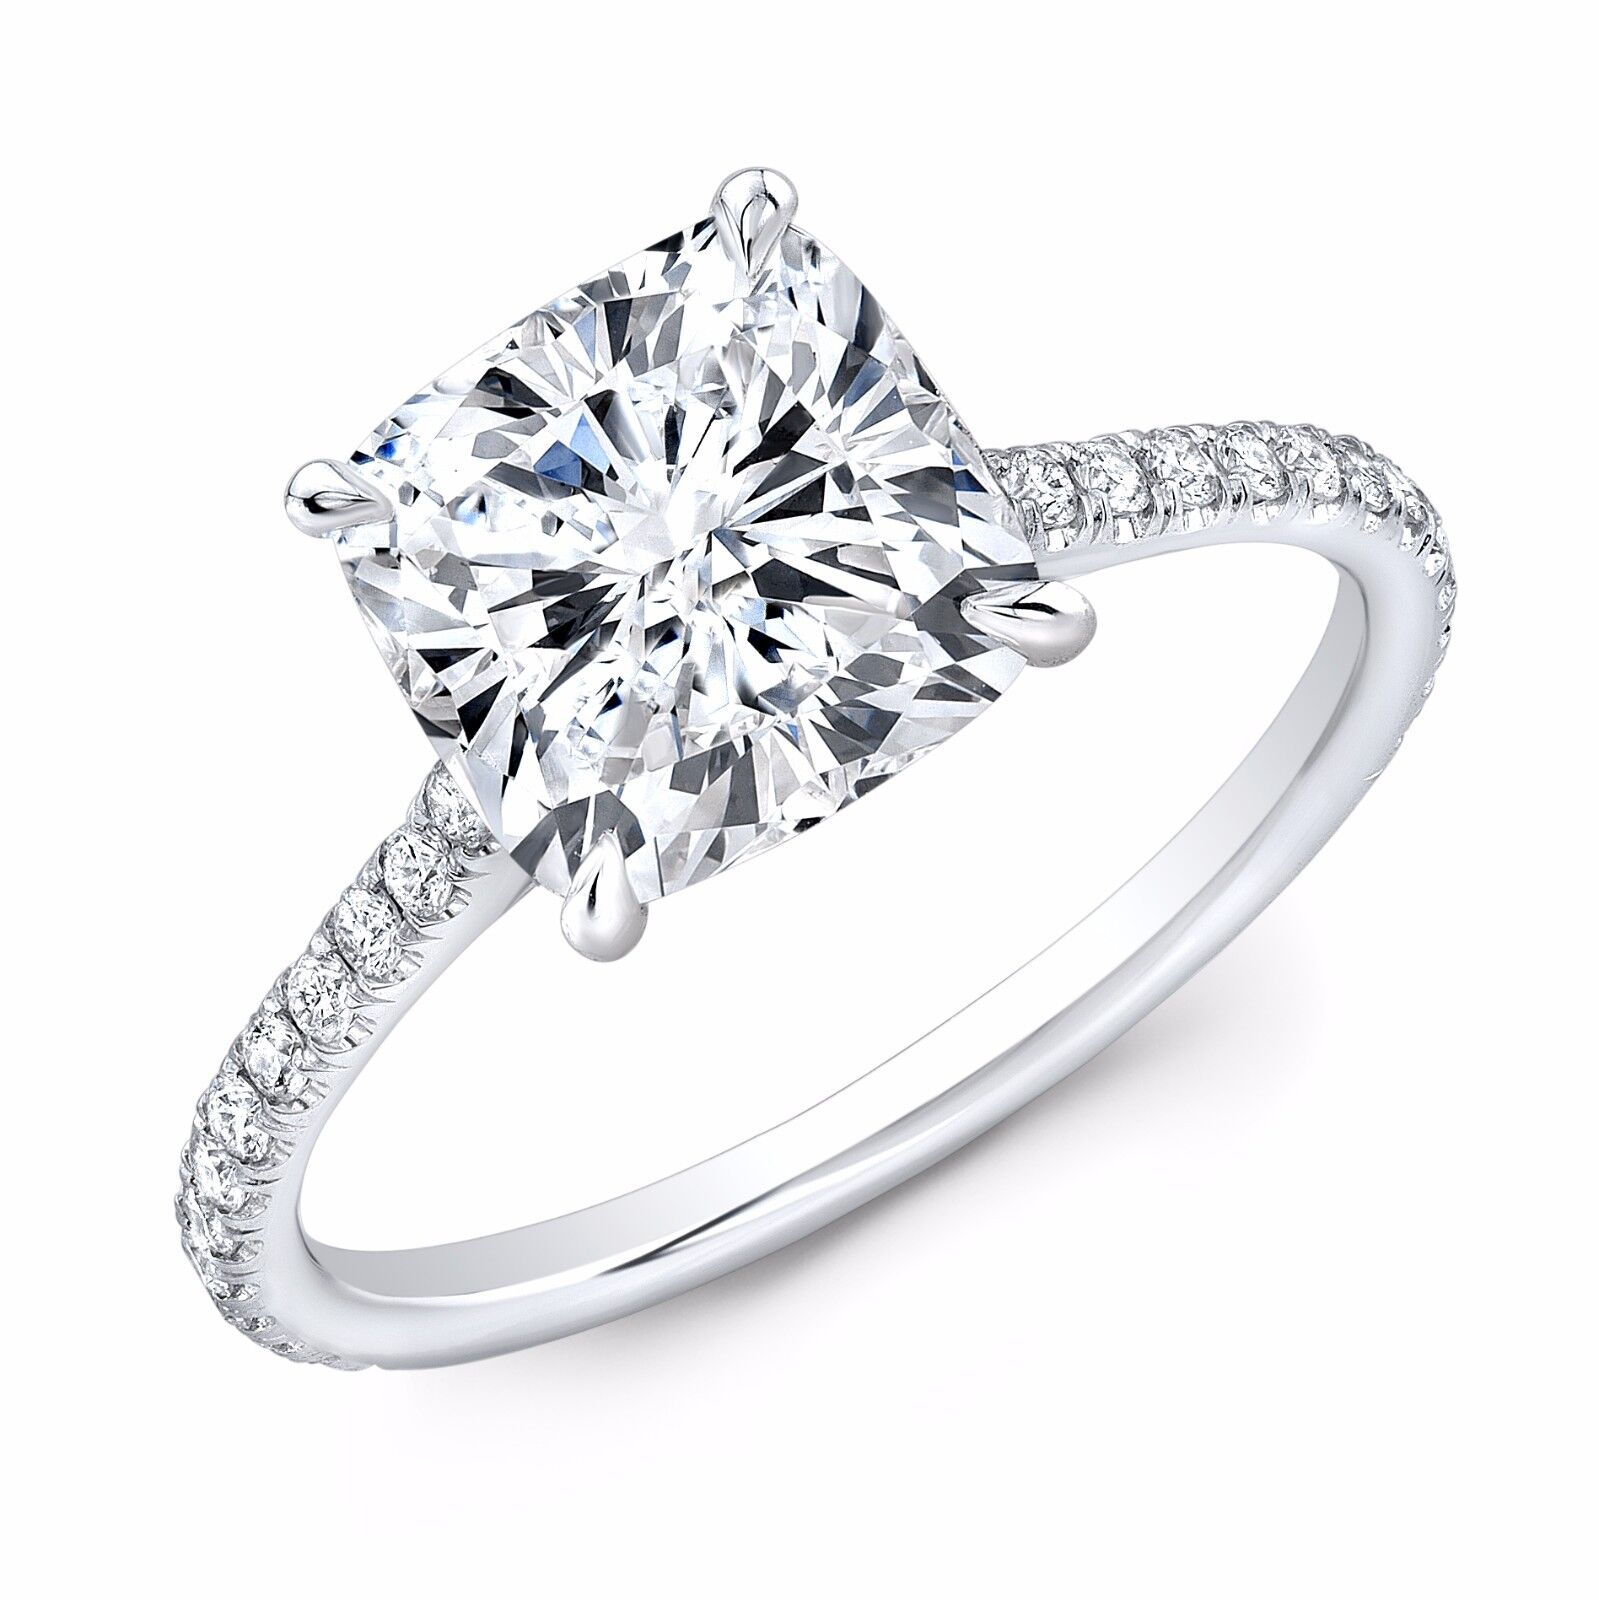 2.30ctw Natural Cushion Pave Diamond Engagement Ring - GIA Certified